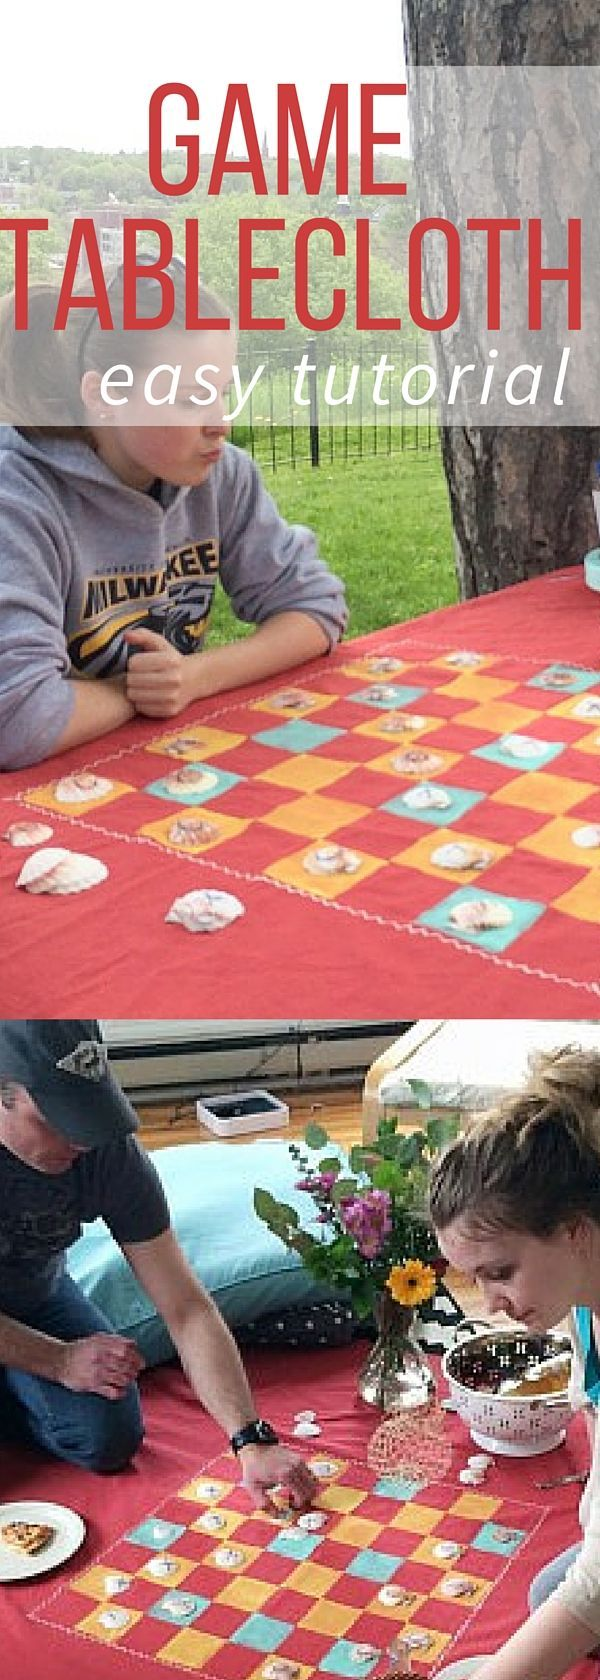 Turn a plain tablecloth or sheet into a great game picnic tablecloth with this easy tutorial. Great for the summer, gifts, and even rainy days!